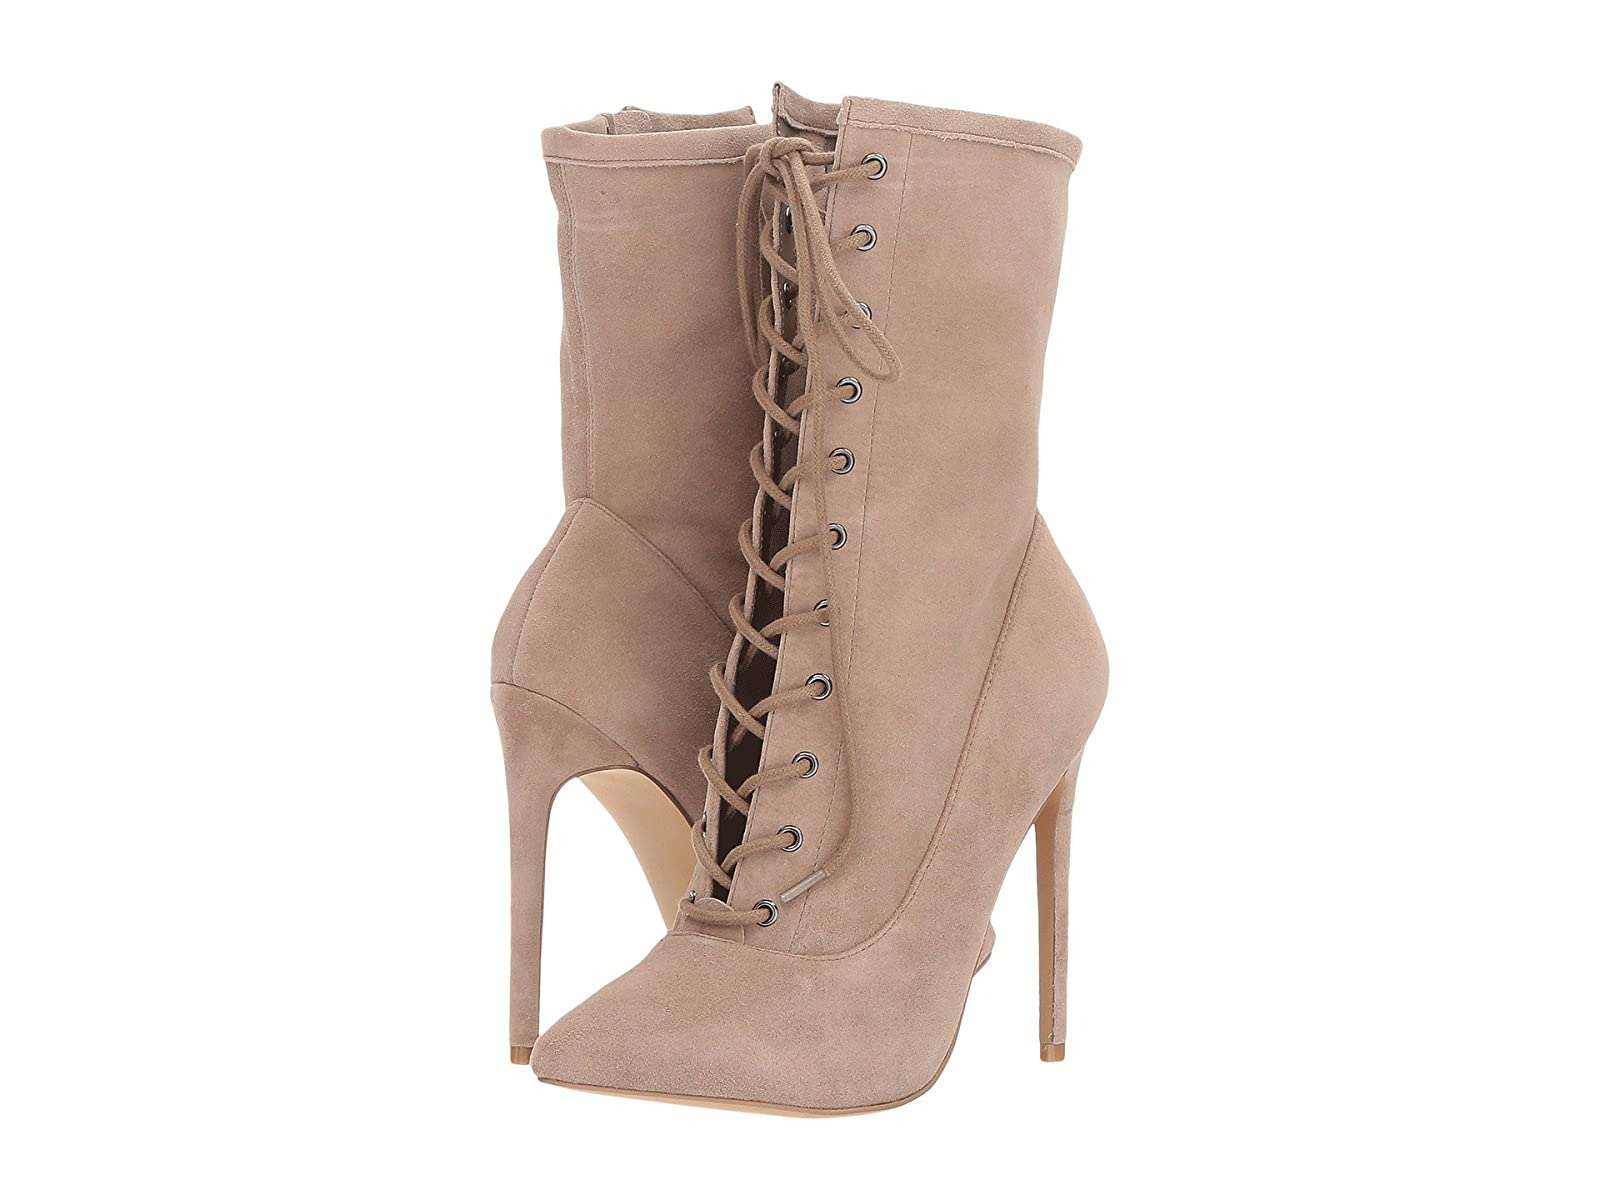 Steve Madden Satisfied Dress BootCheap and distinctive eye-catching shoes